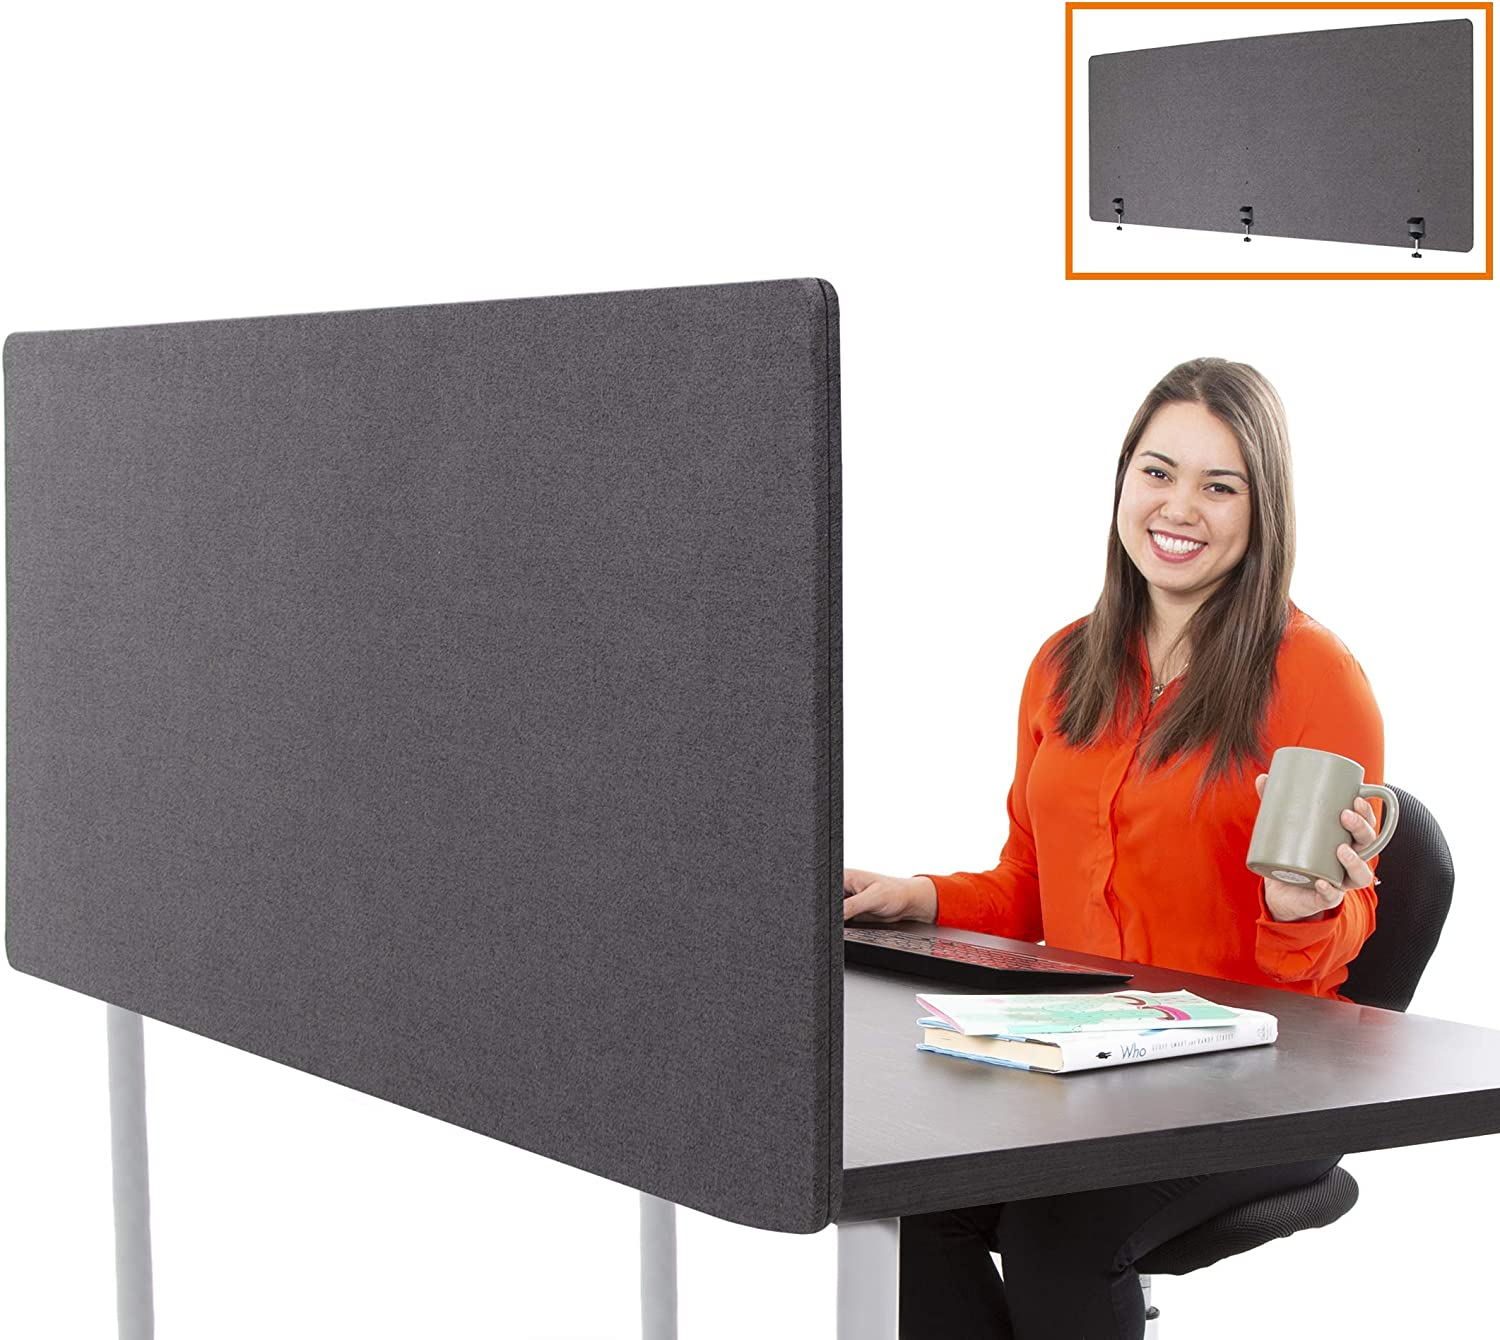 "Stand Steady ClipPanels Desk Mounted Privacy Panels | Height Adjustable Desk Divider| Easy Clamp on Privacy Screen or Modesty Panel - Reduces Up to 85% of Noise | (Gray / 60"" x 24"")"